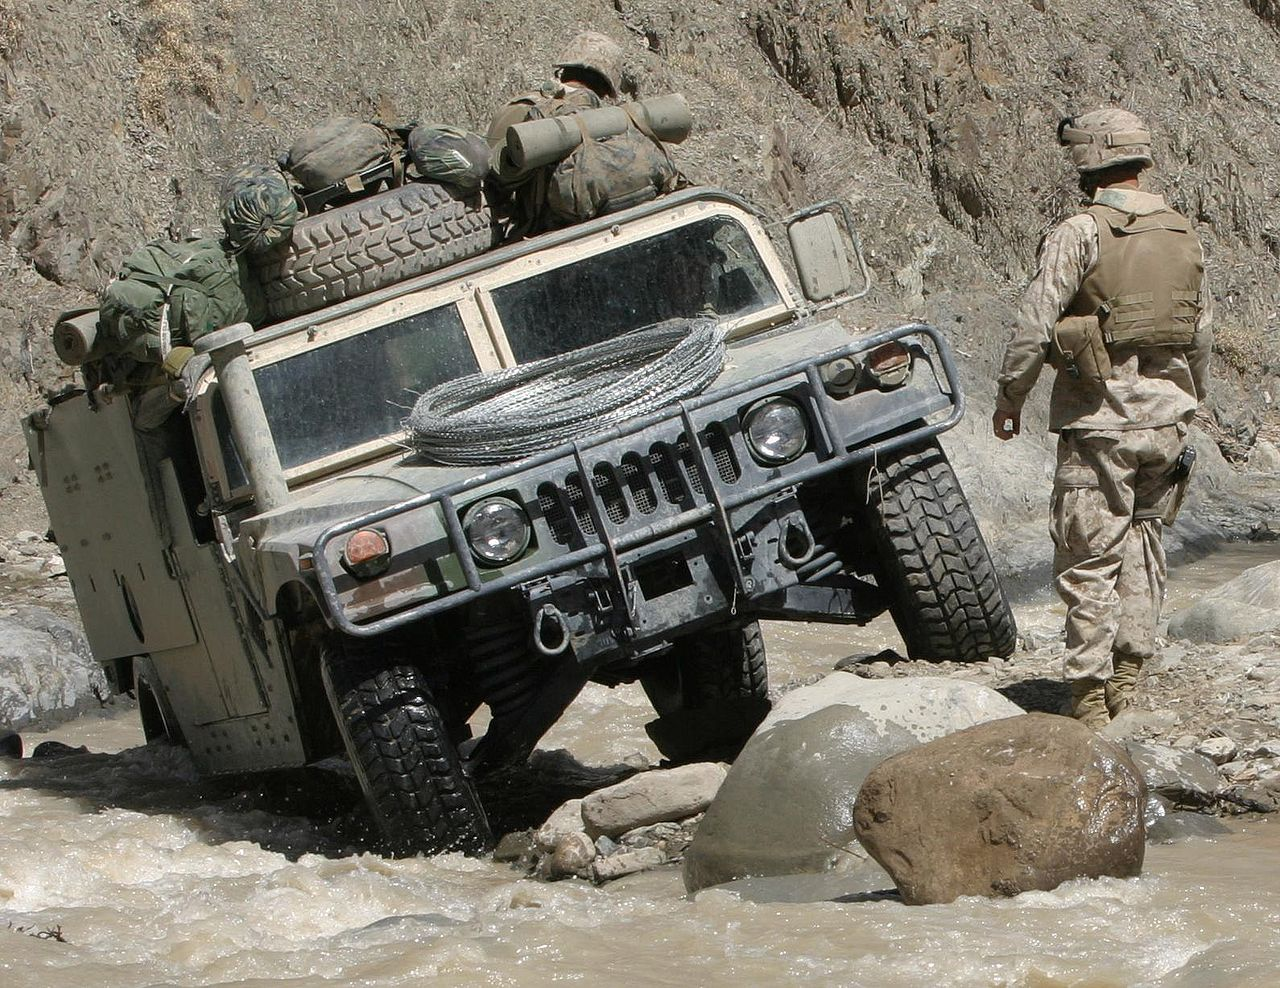 Humvee in a River